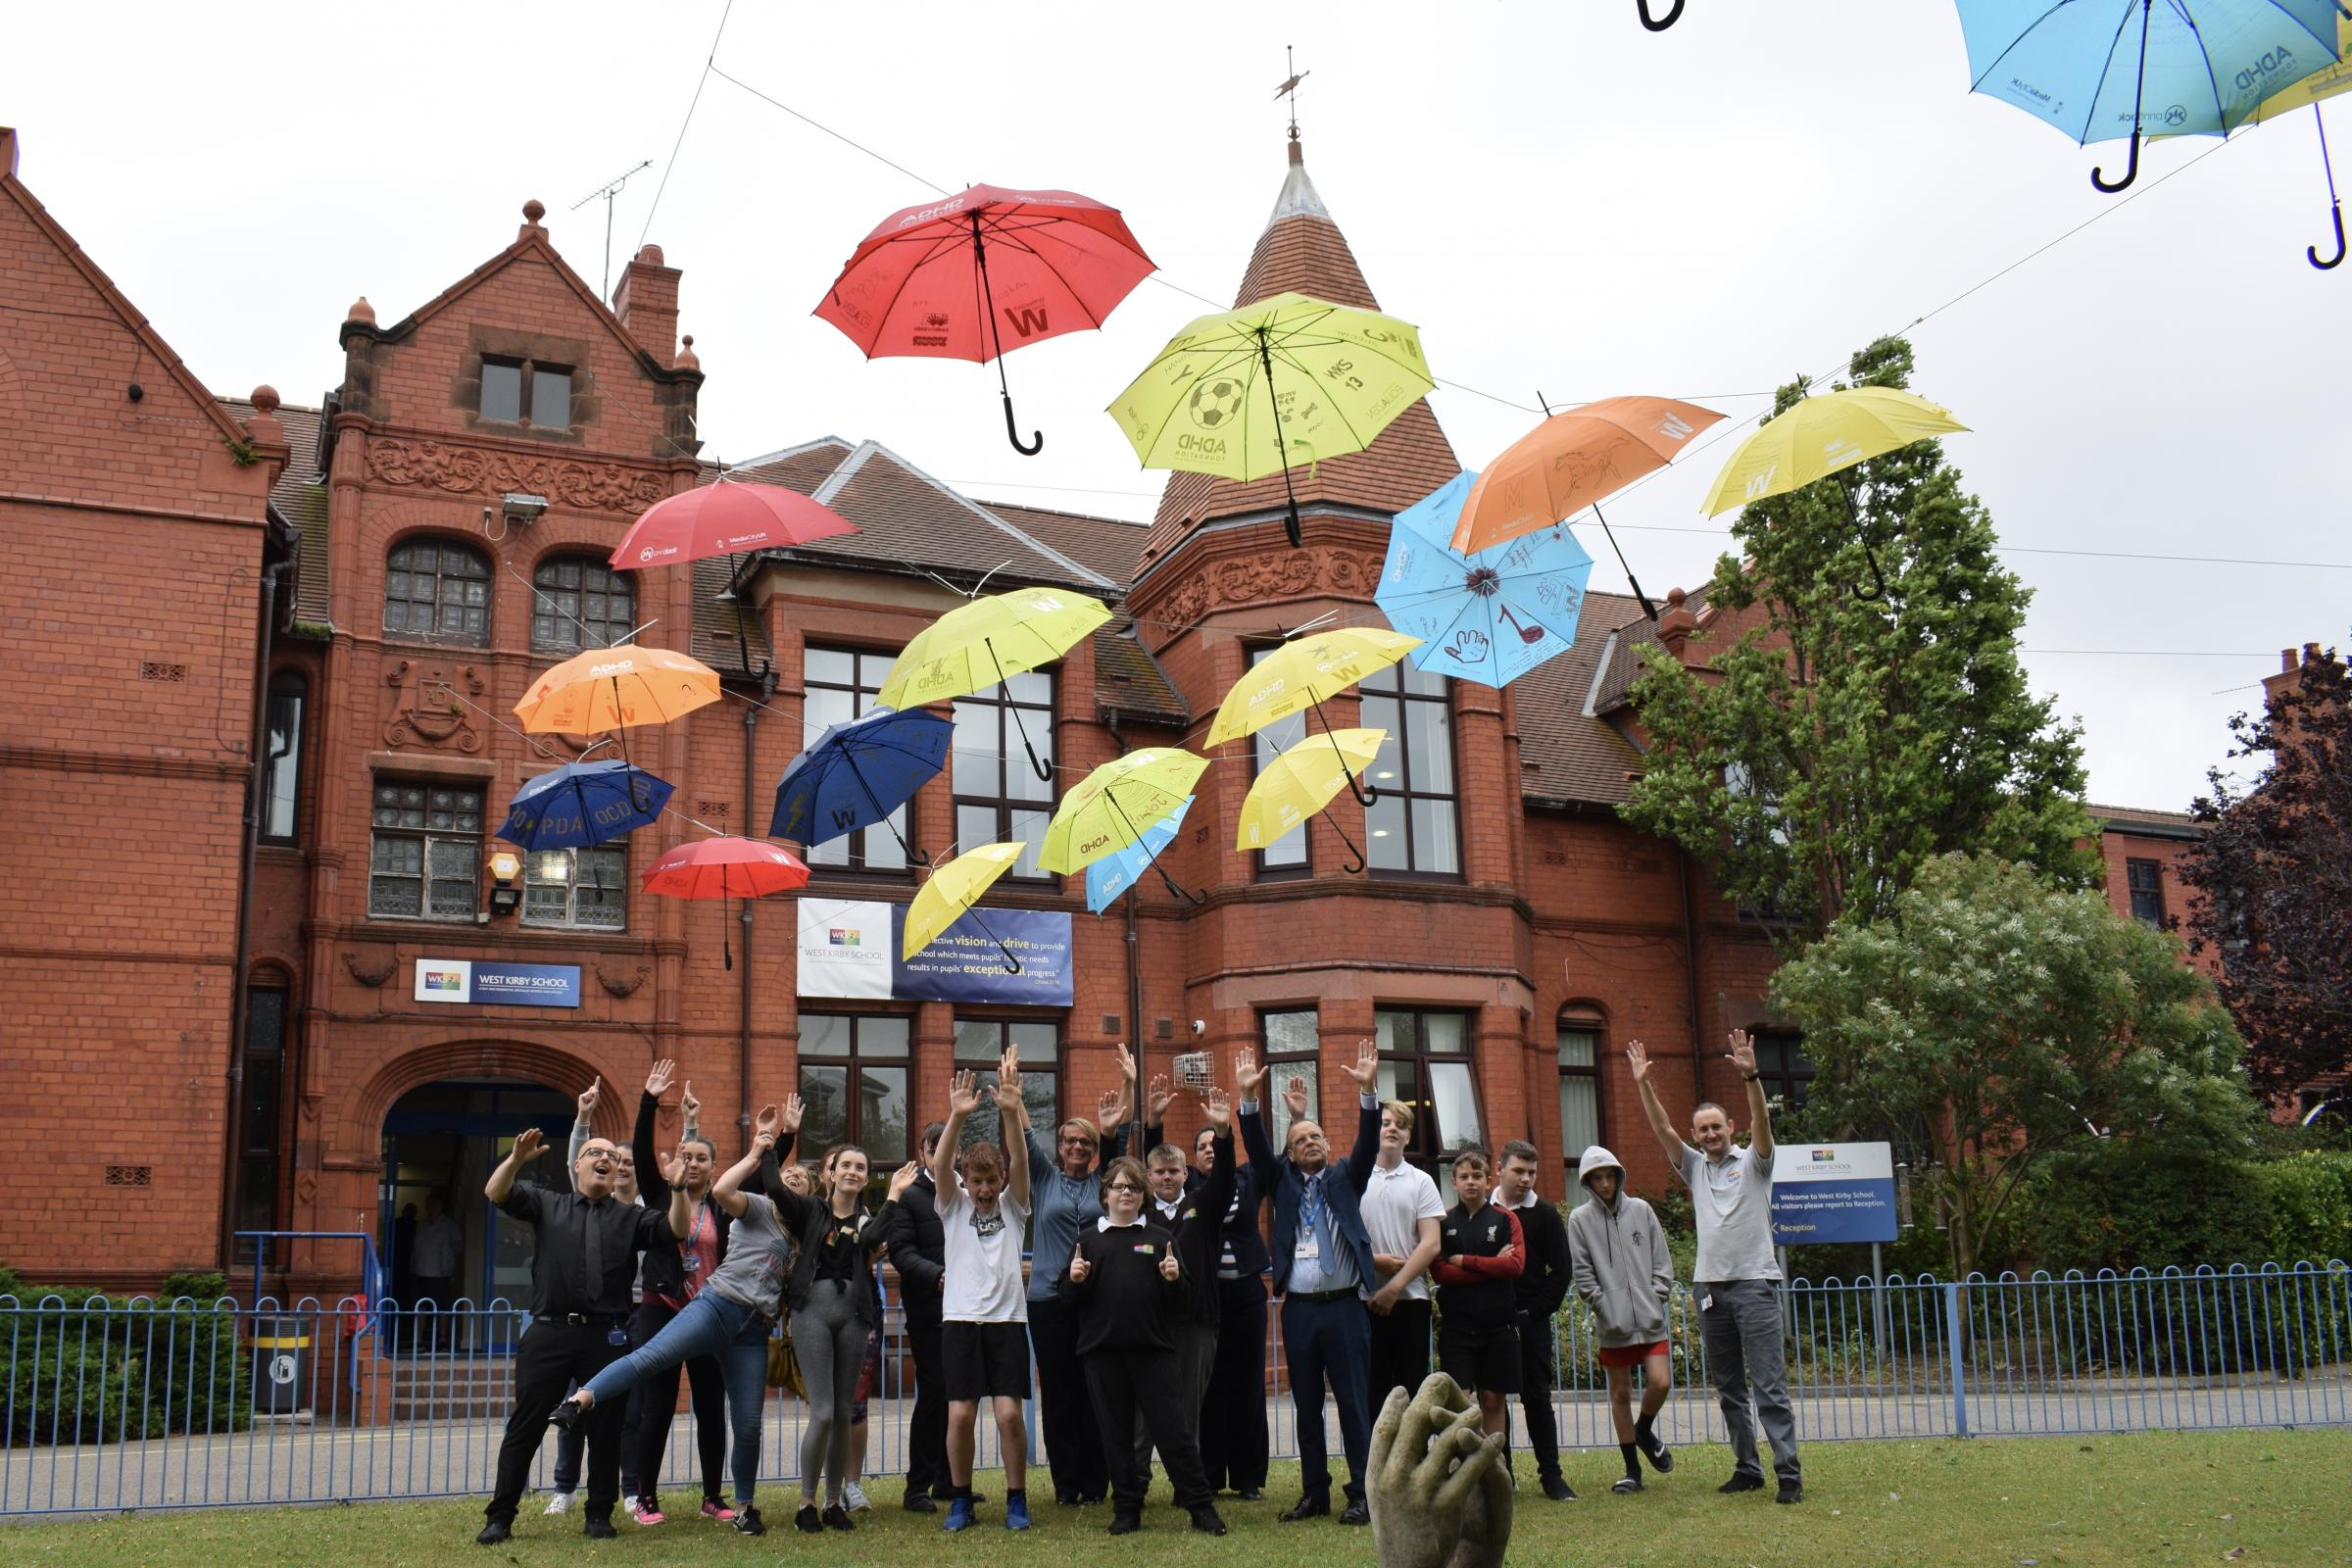 West Kirby School and College celebrates neurodiversity with its very own umbrella project